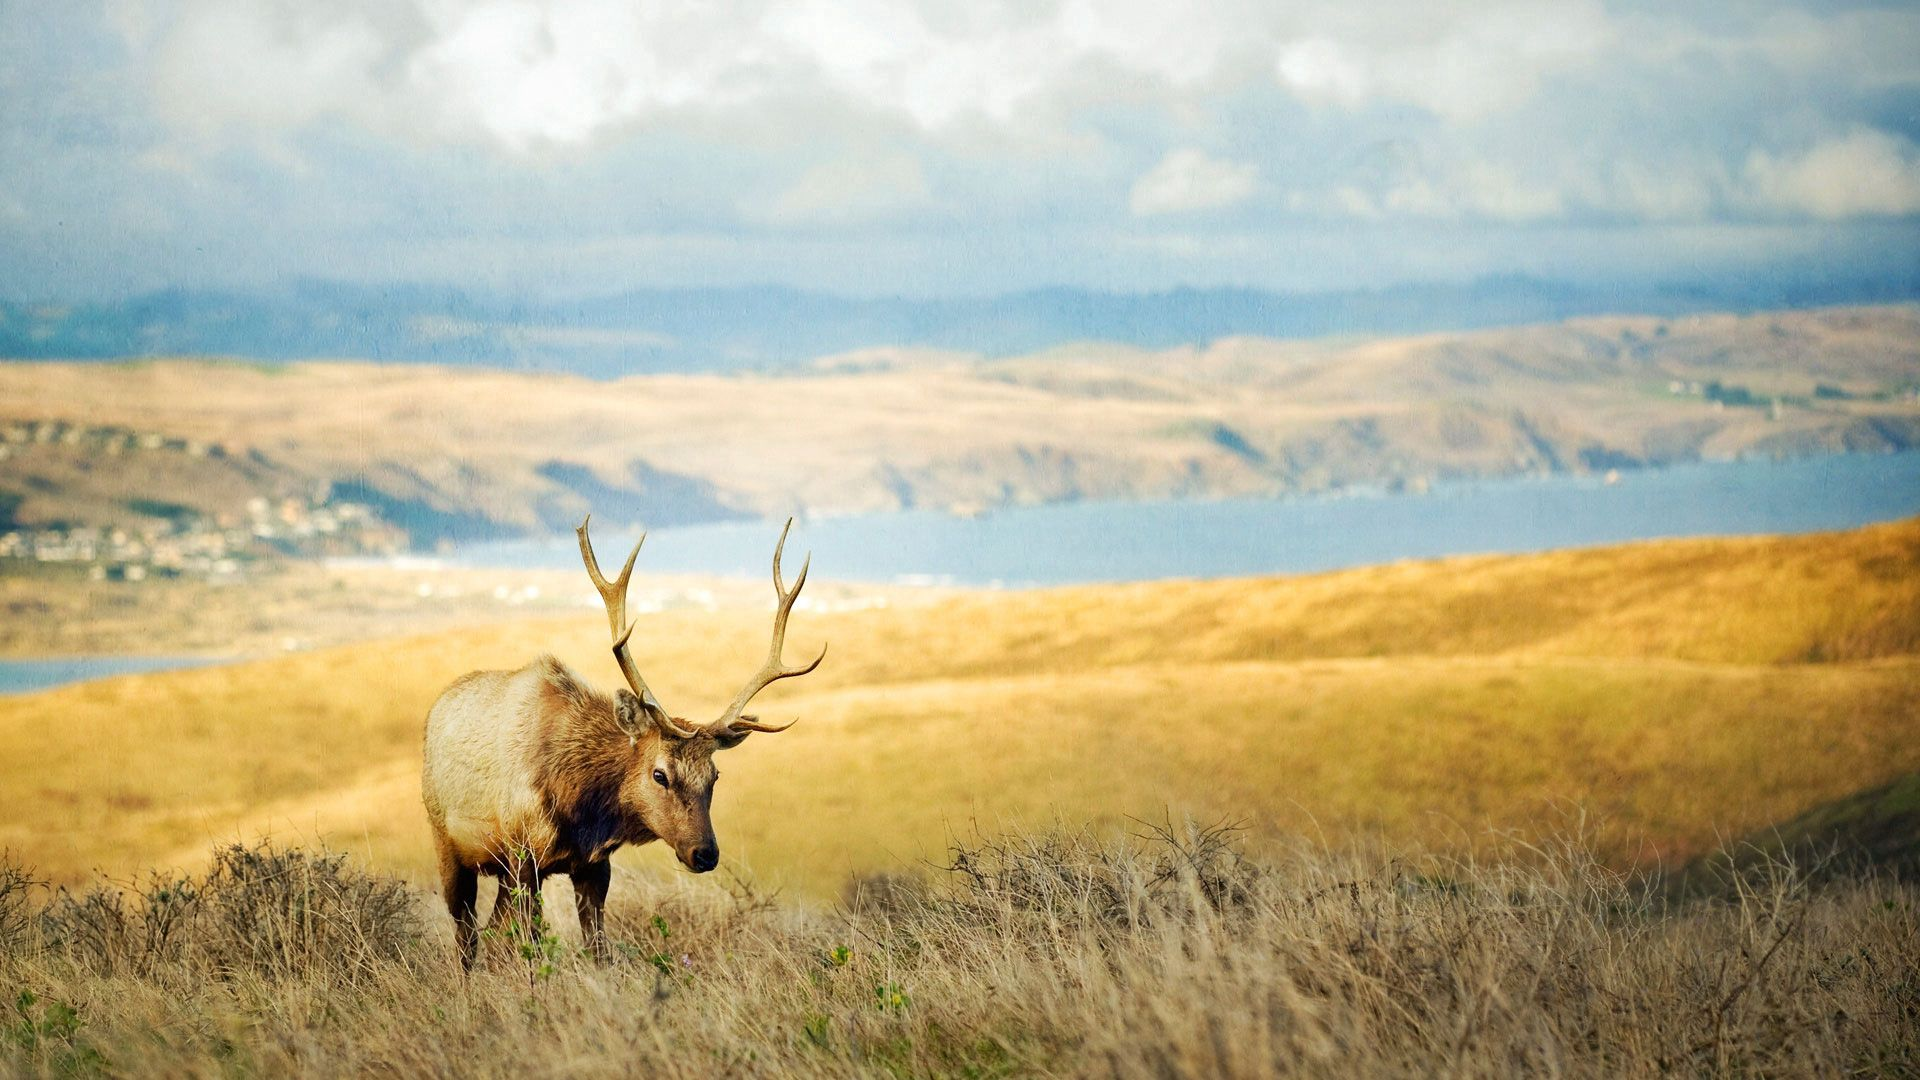 92729 download wallpaper Animals, Grass, Hills, Deer, Lake, Horns screensavers and pictures for free